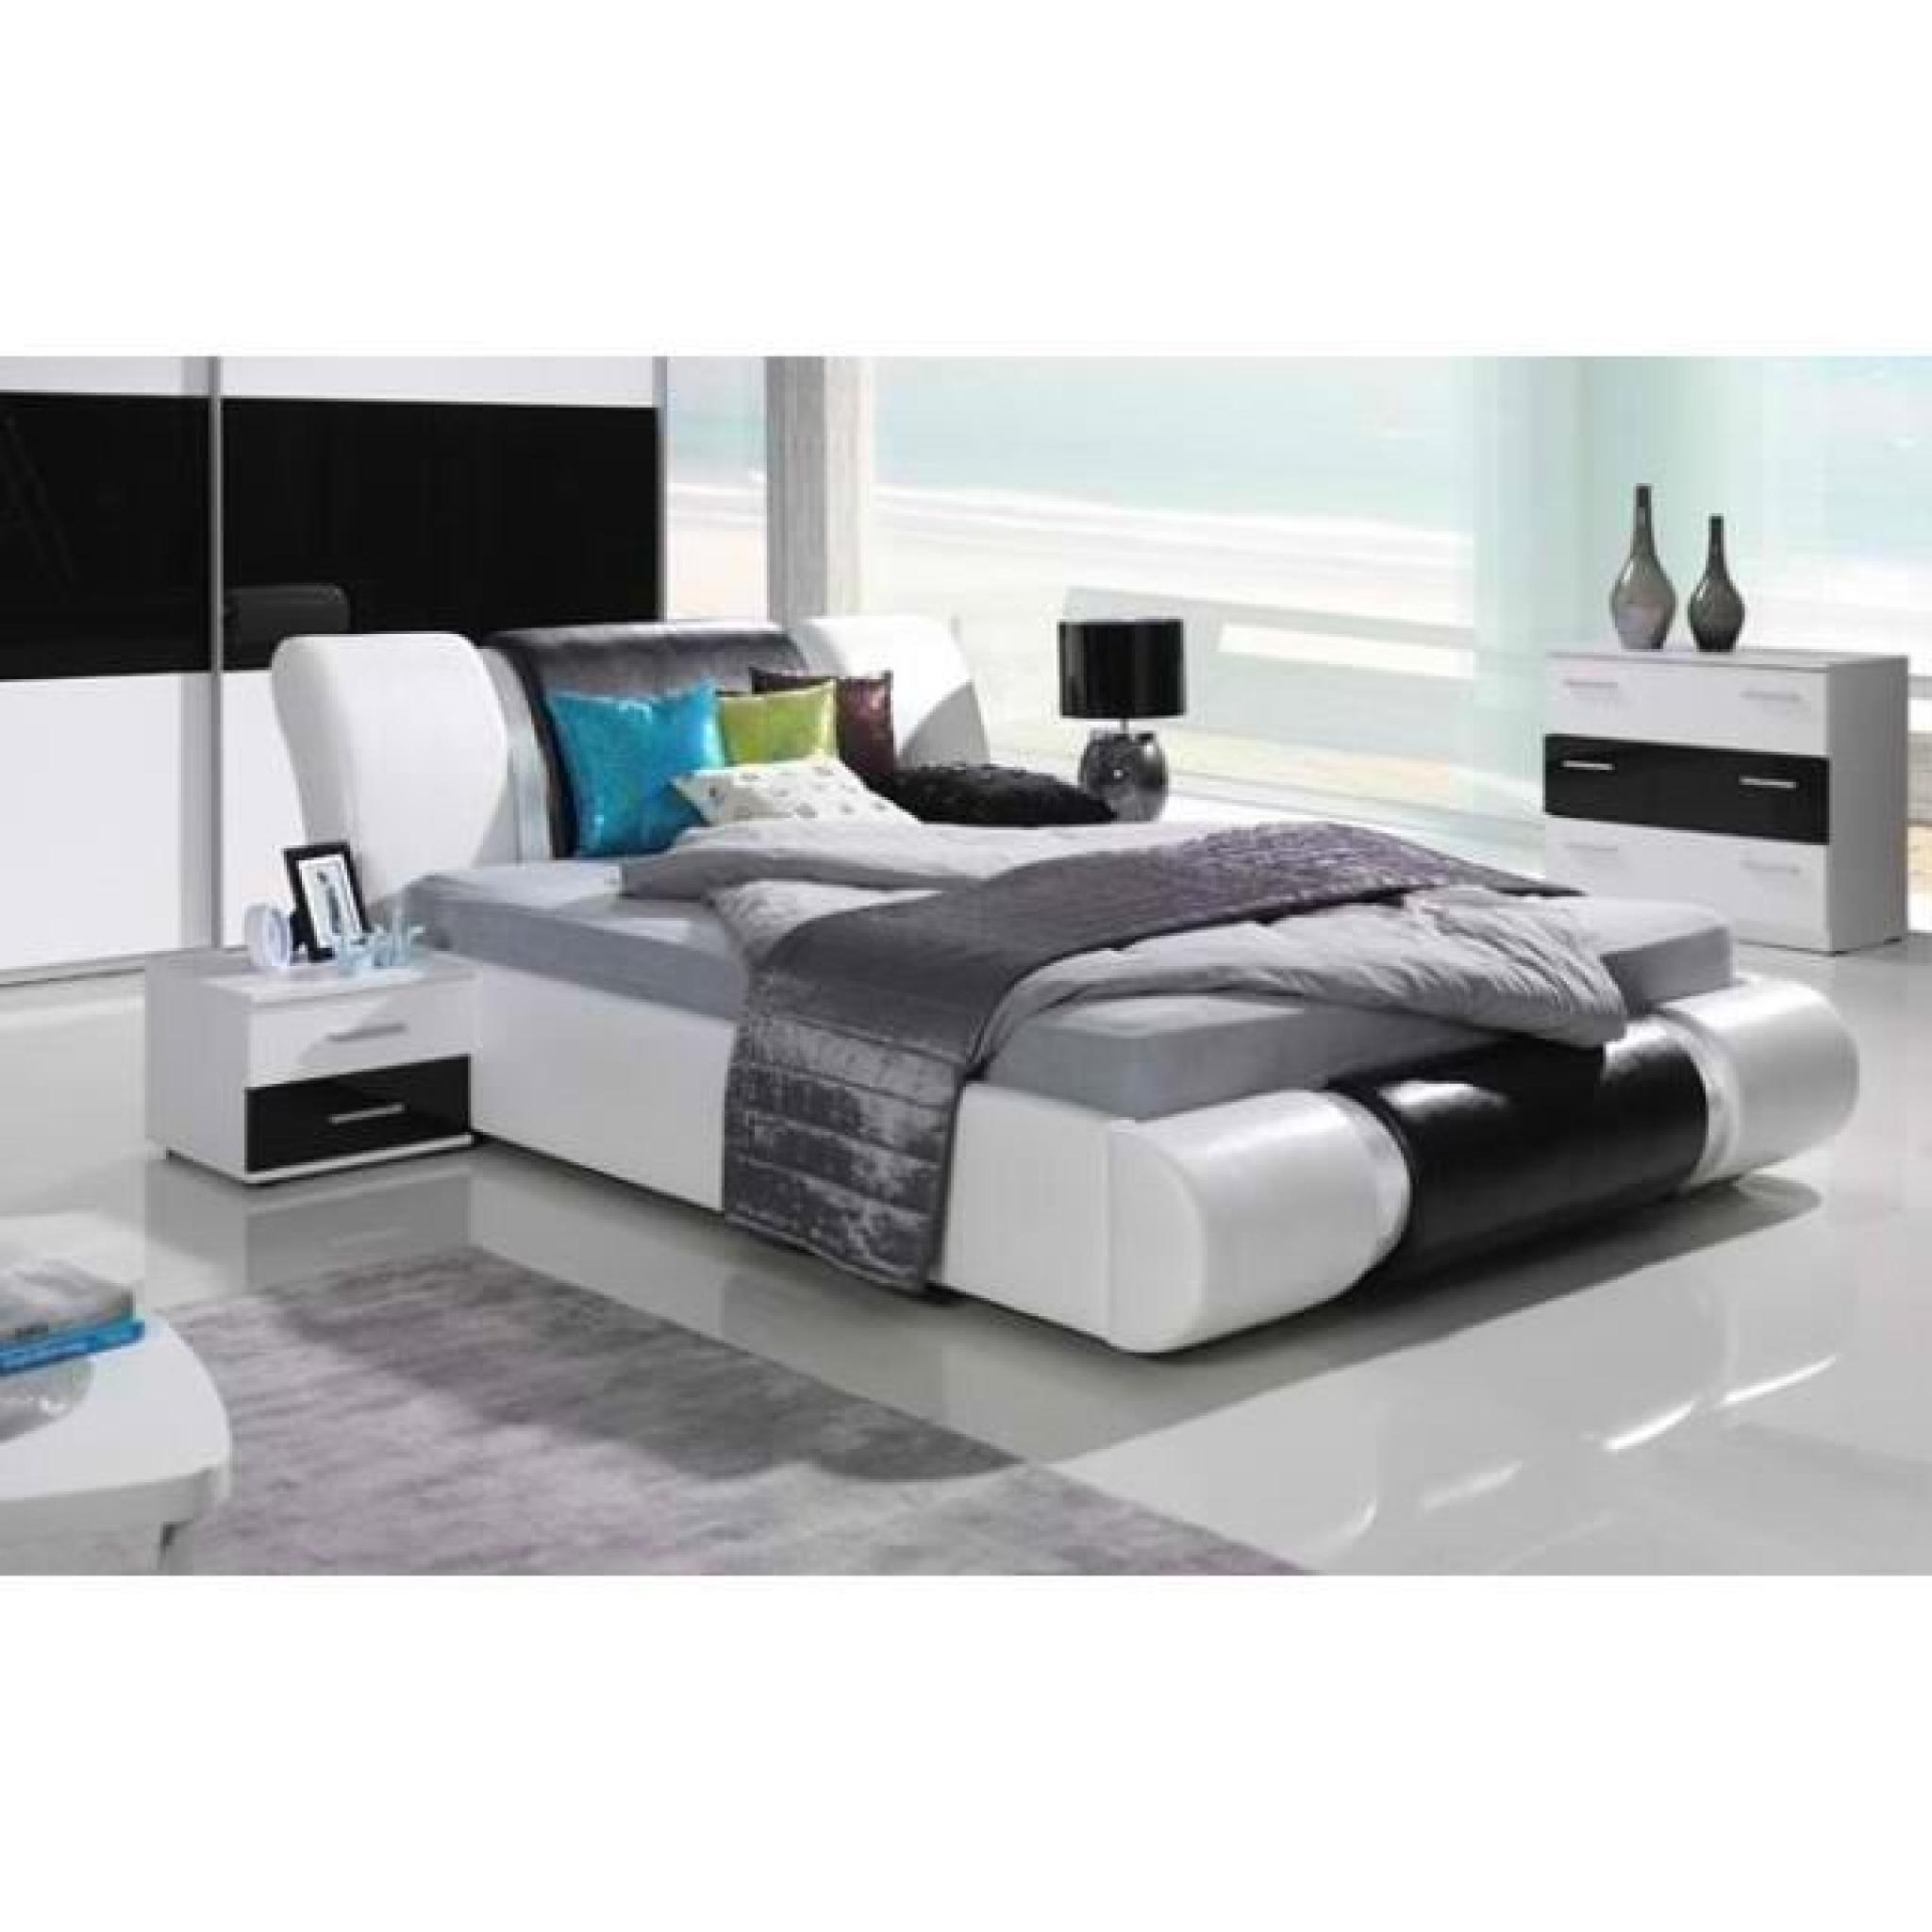 ensemble meubles design pour chambre coucher texas blanc. Black Bedroom Furniture Sets. Home Design Ideas